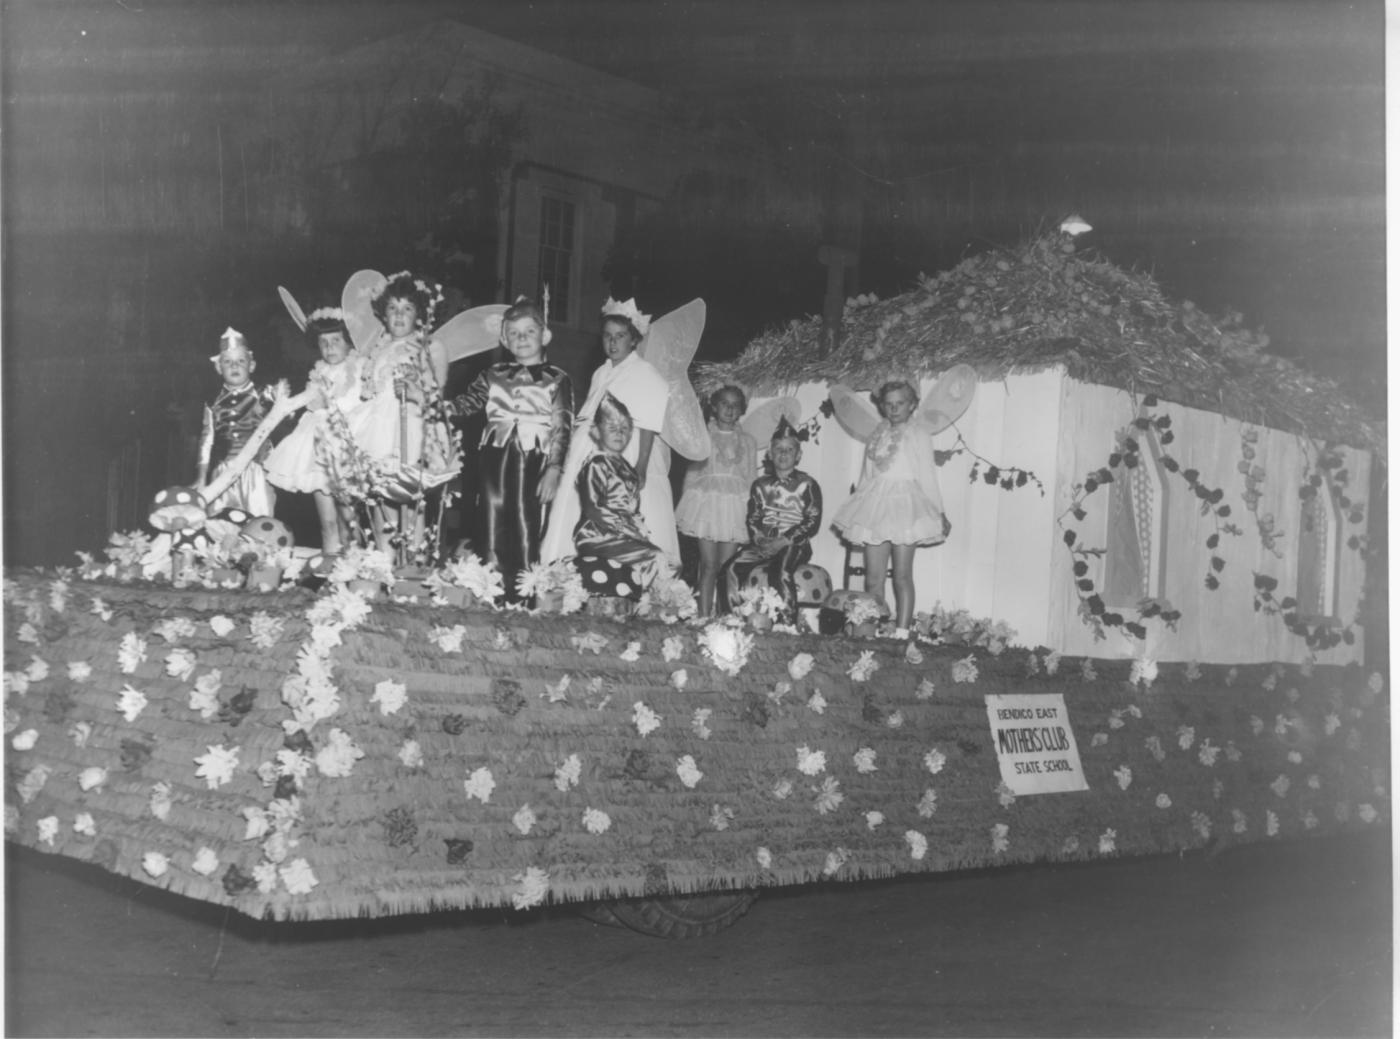 Bendigo Easter Fair Society historical parade photo